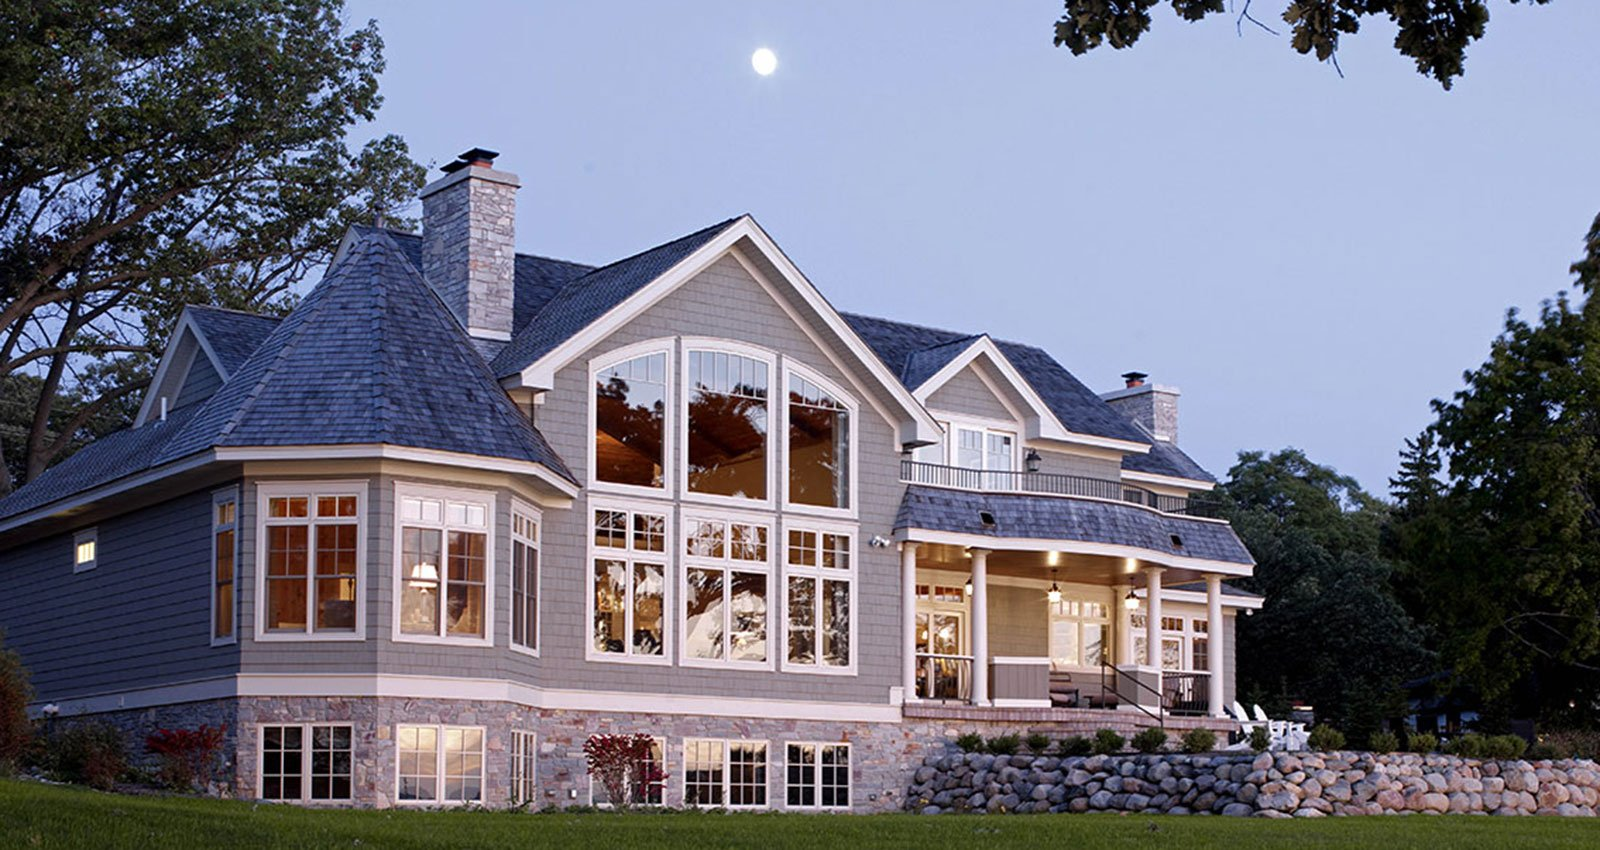 Home Design Ideas Pictures: Custom Home Builder Walworth County WI